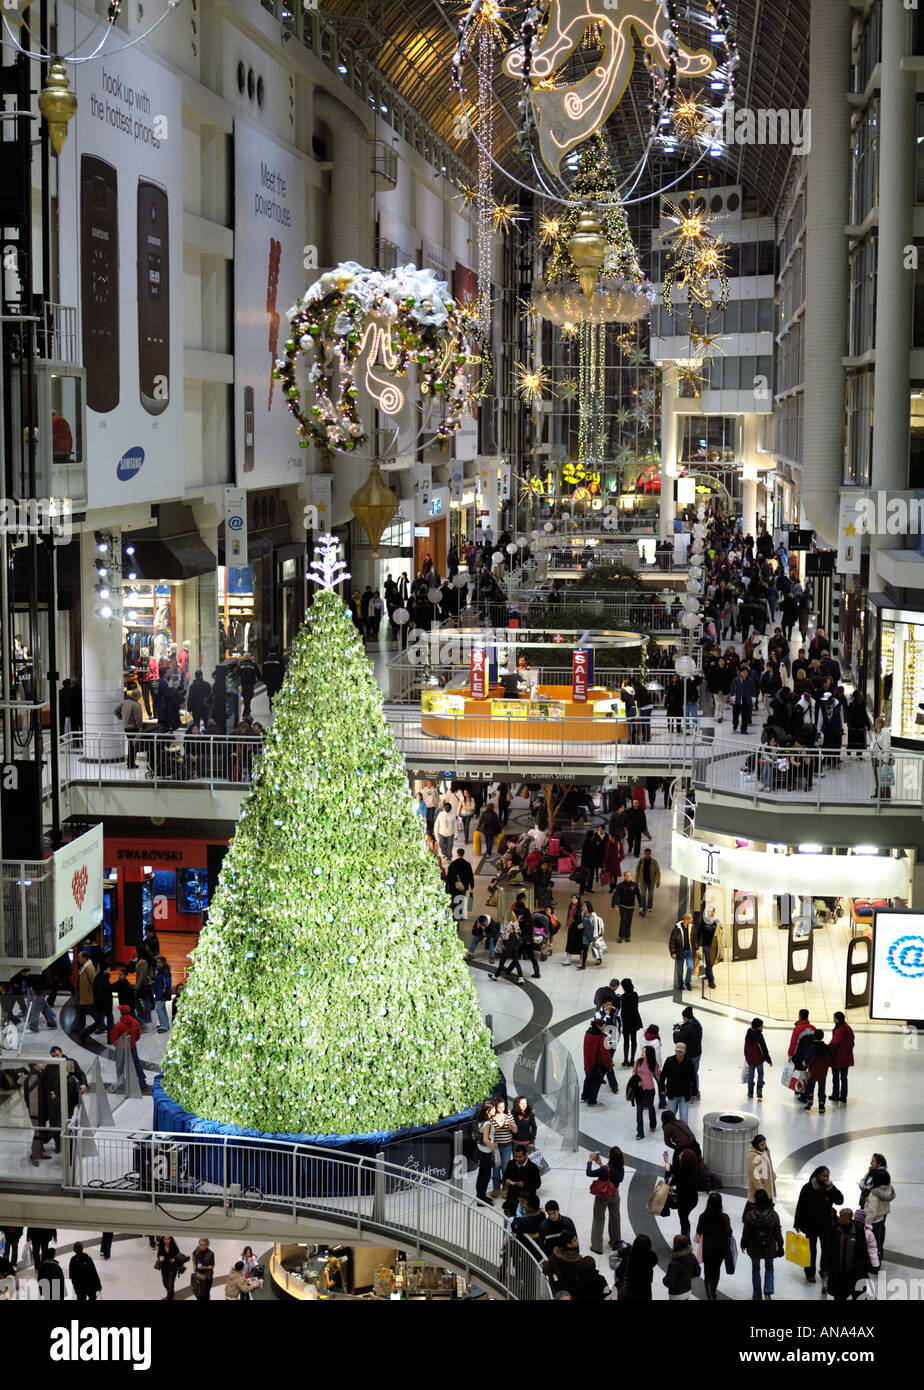 Toronto Eaton Centre Christmas Decoration In A Shopping Mall